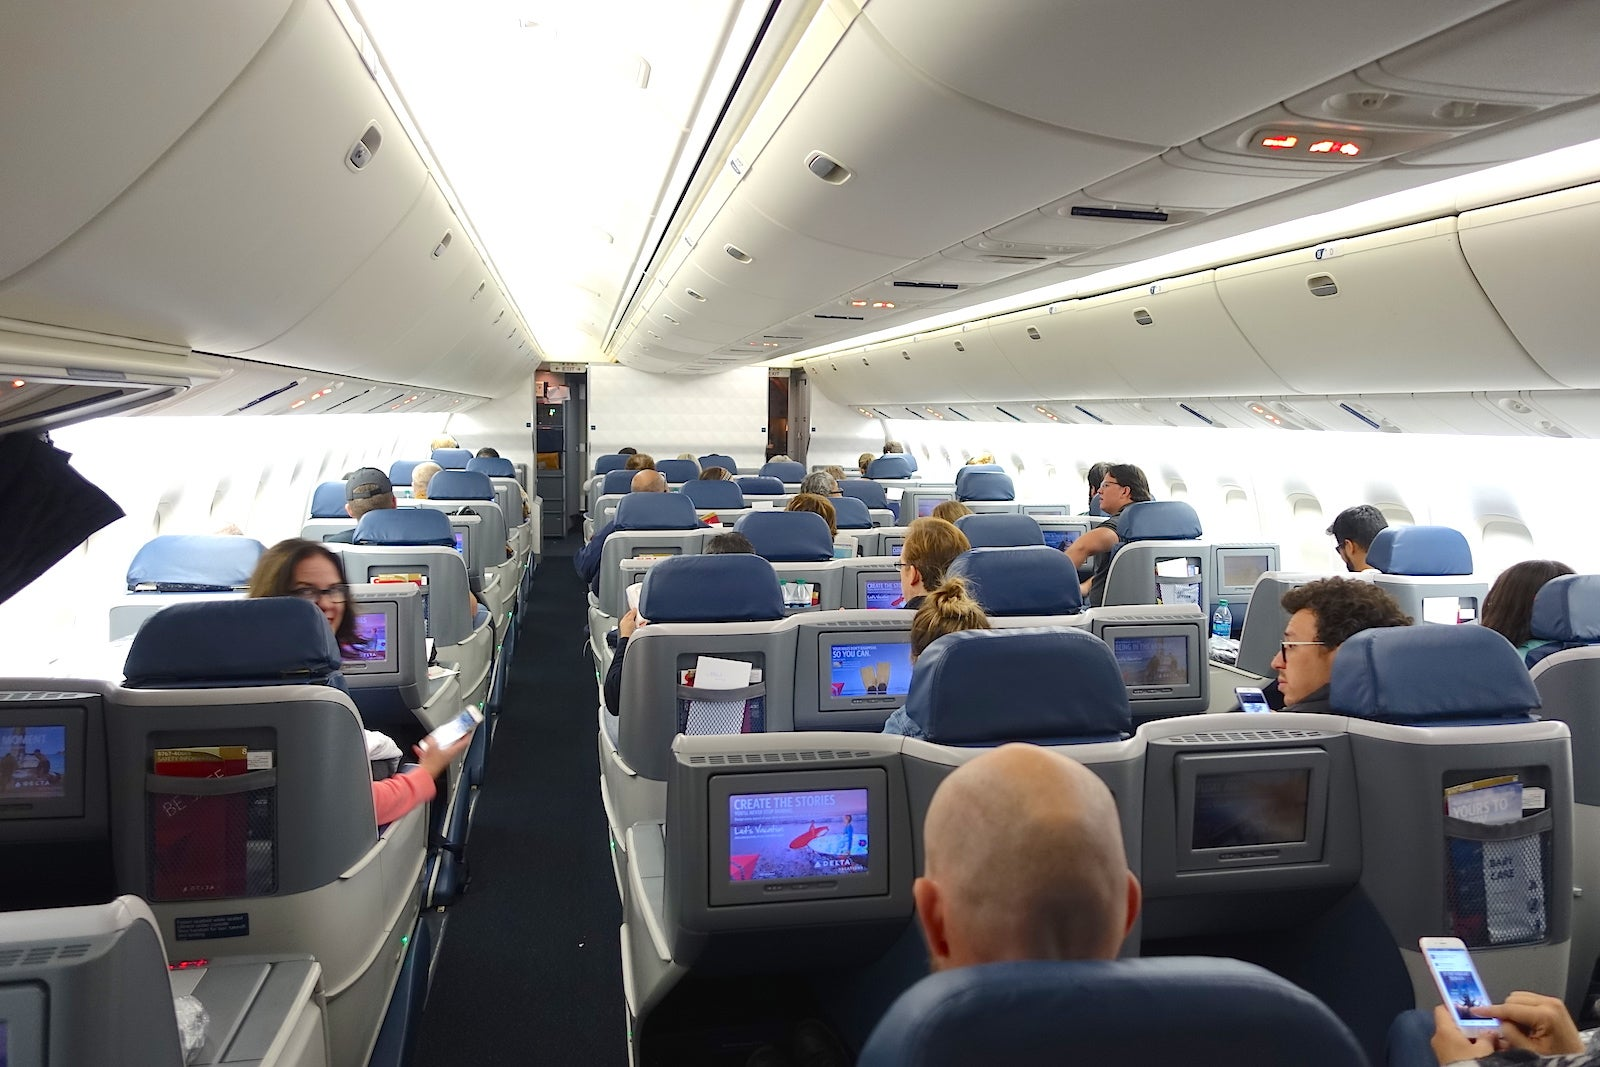 Review: Delta (767-400ER) Business Cl, Atlanta to Lima